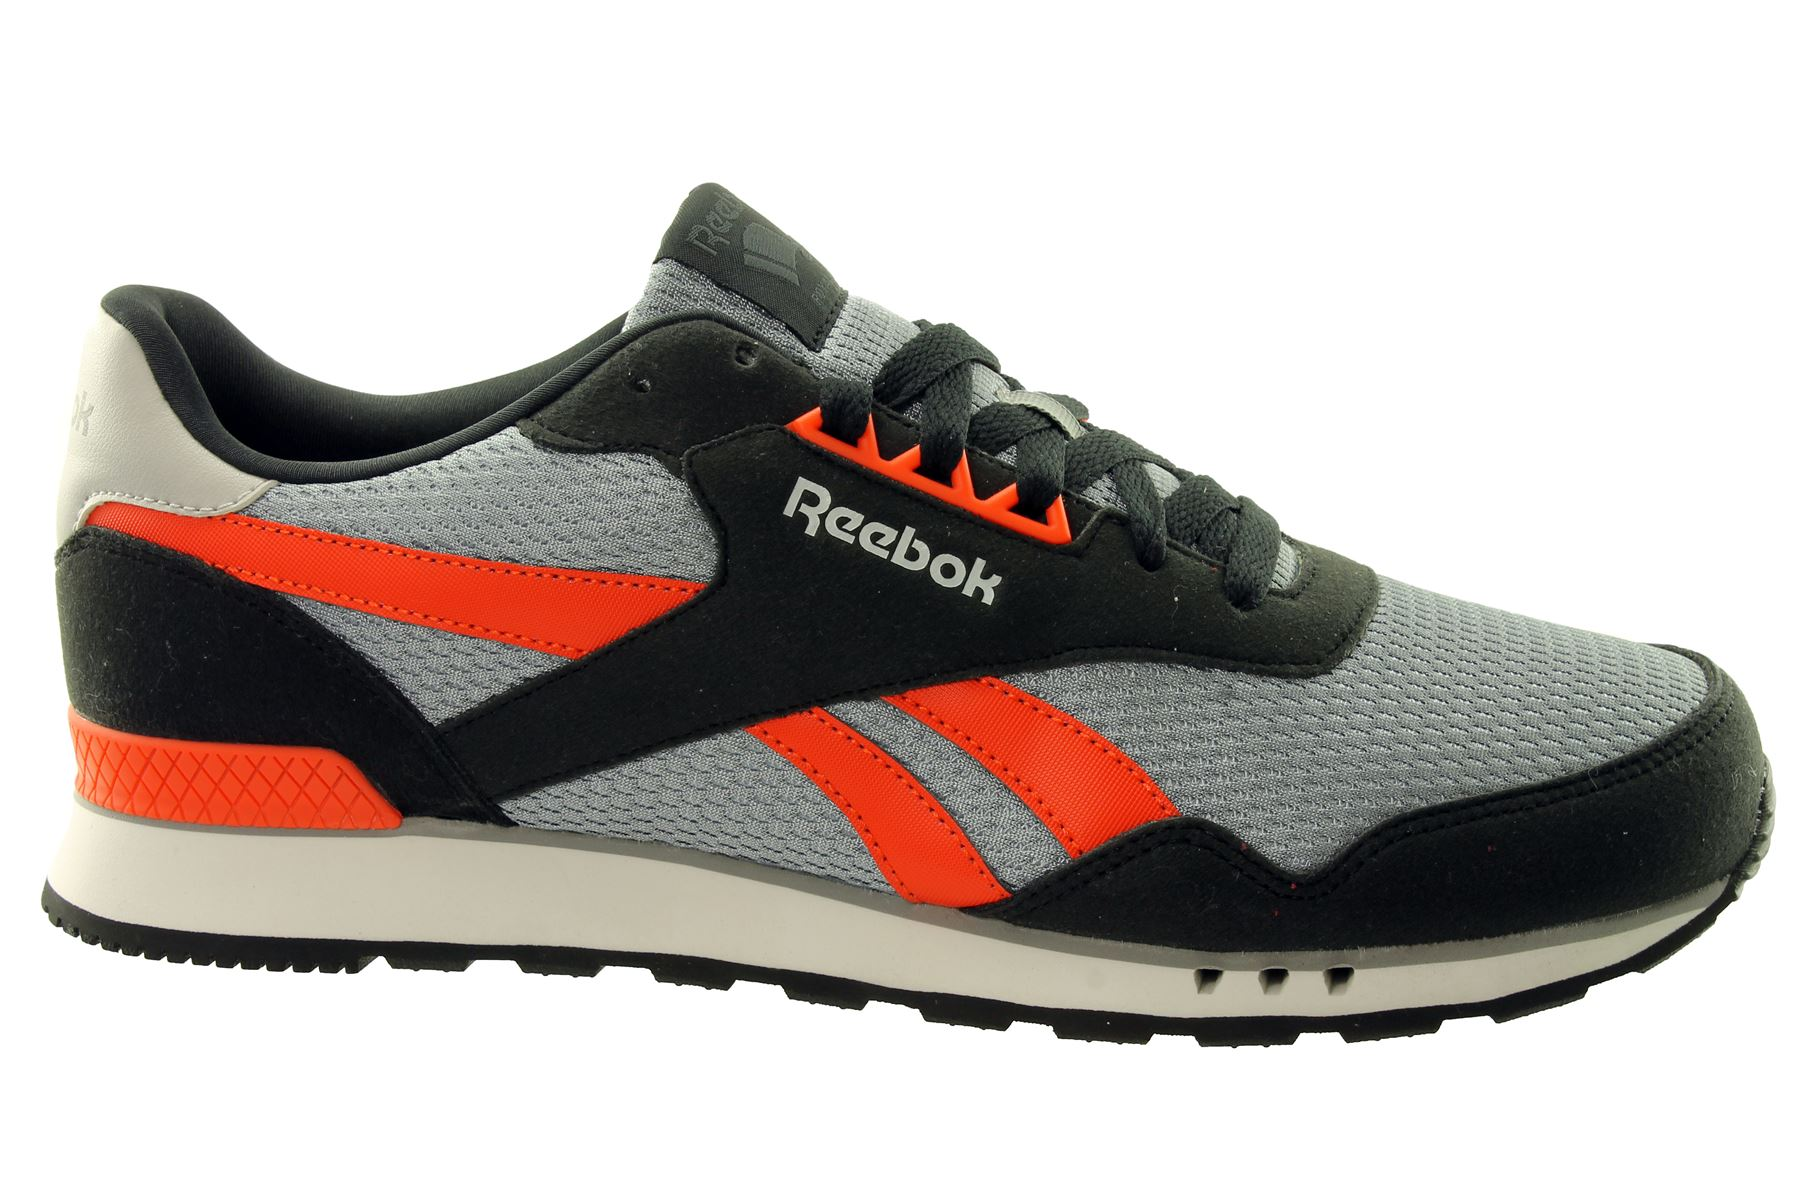 reebok classic nylon rayen r sprint mens trainers sale price sizes uk 3 to 12 ebay. Black Bedroom Furniture Sets. Home Design Ideas